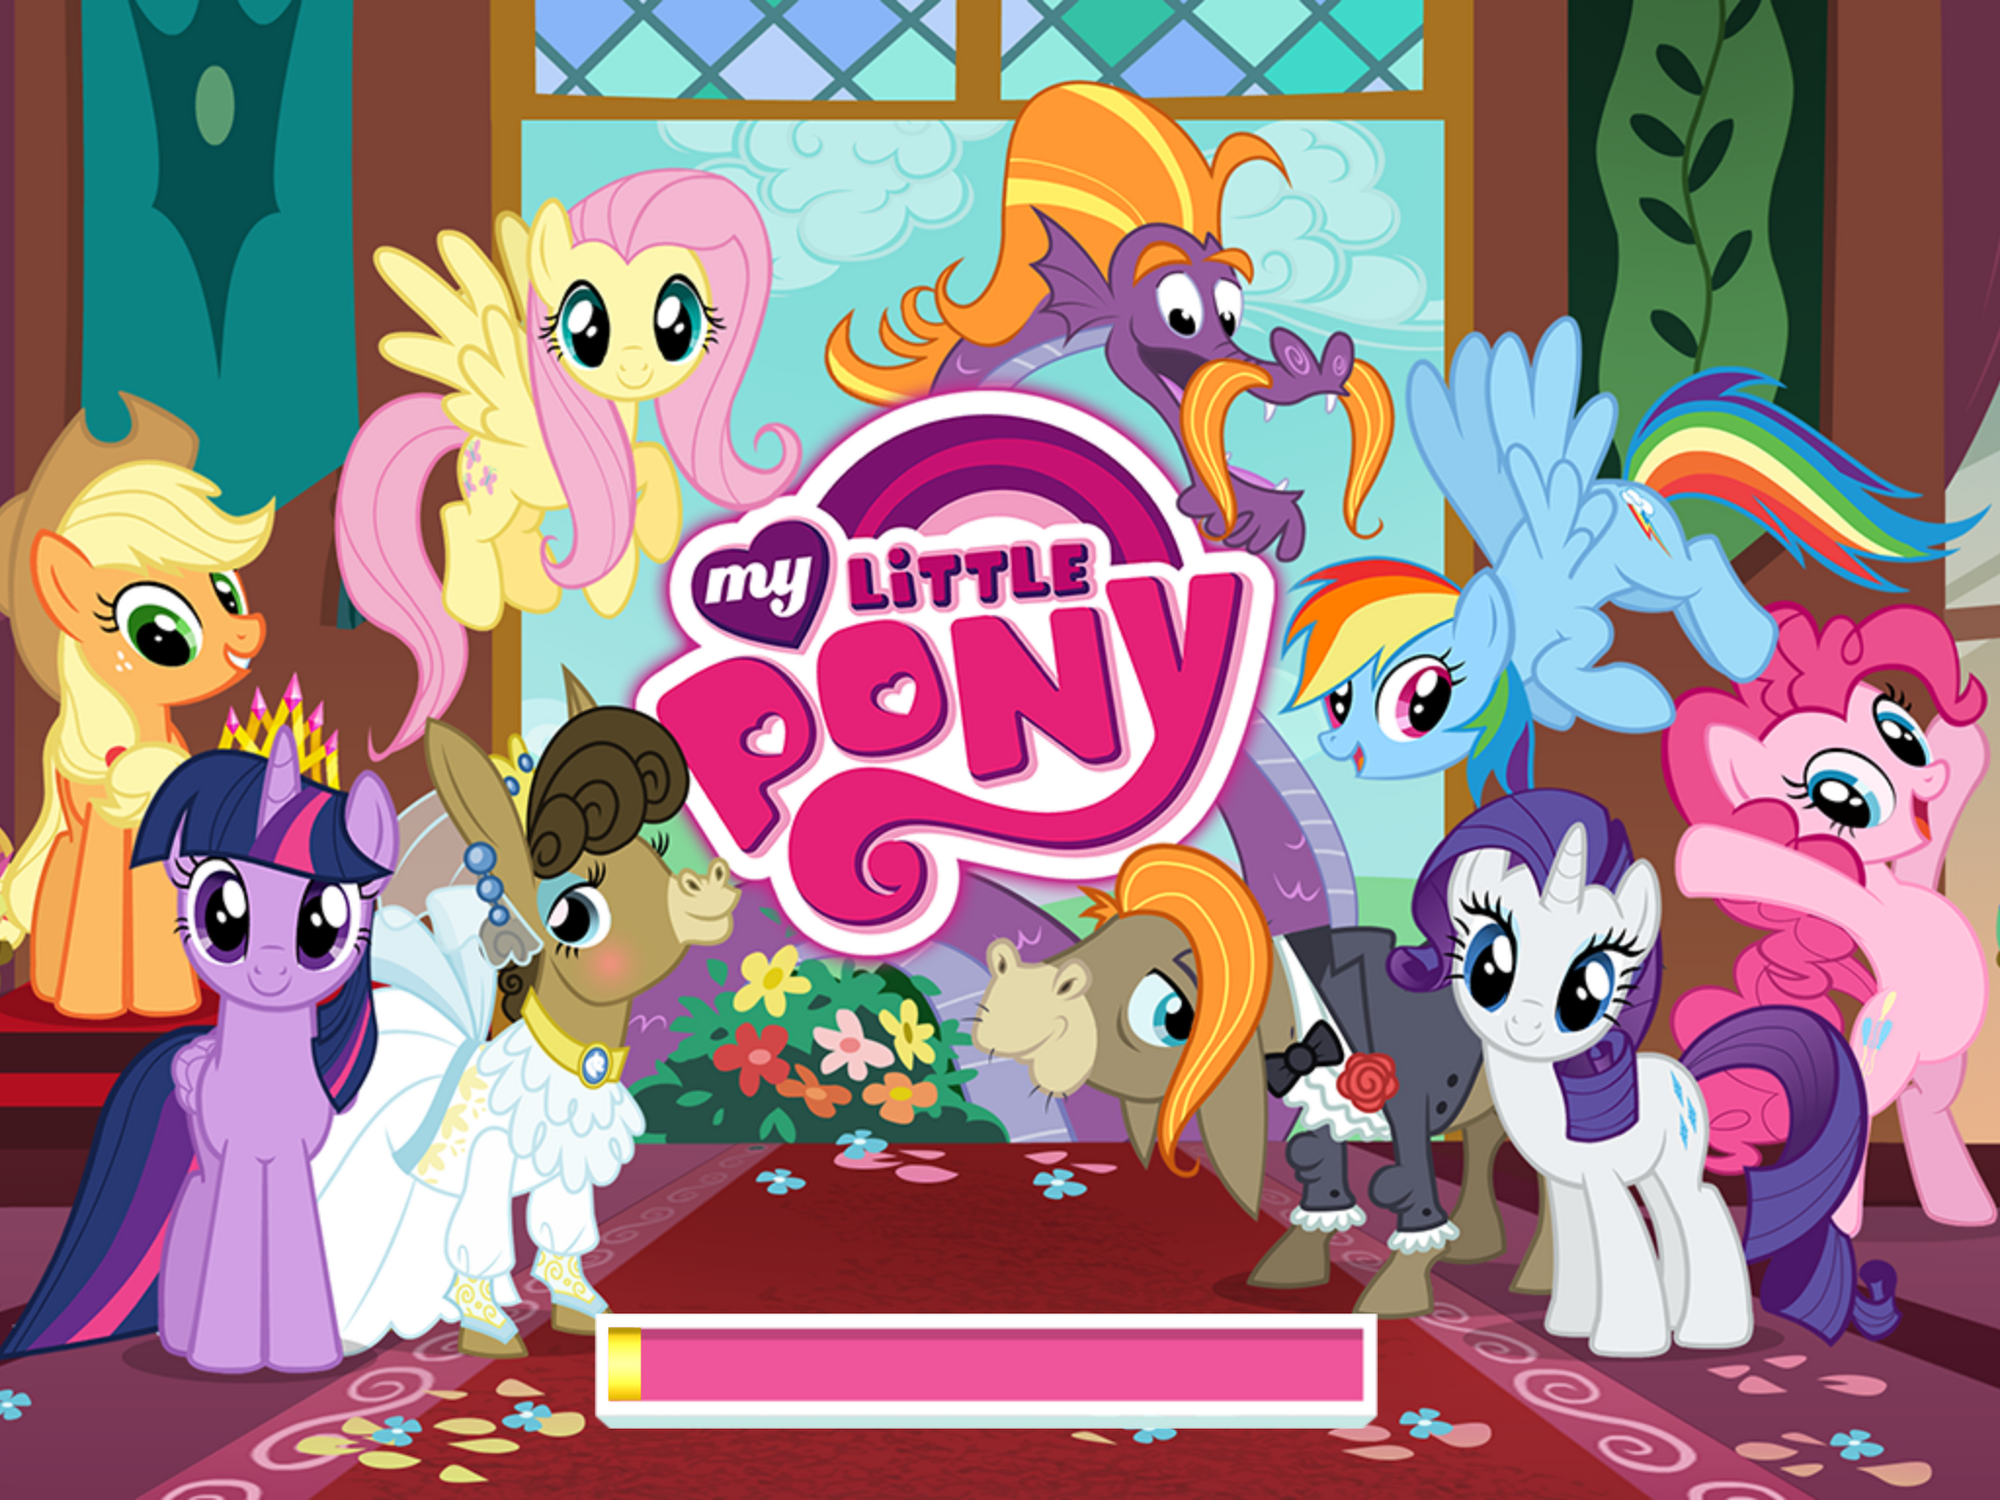 My Little Pony (mobile game) | My Little Pony Friendship ...